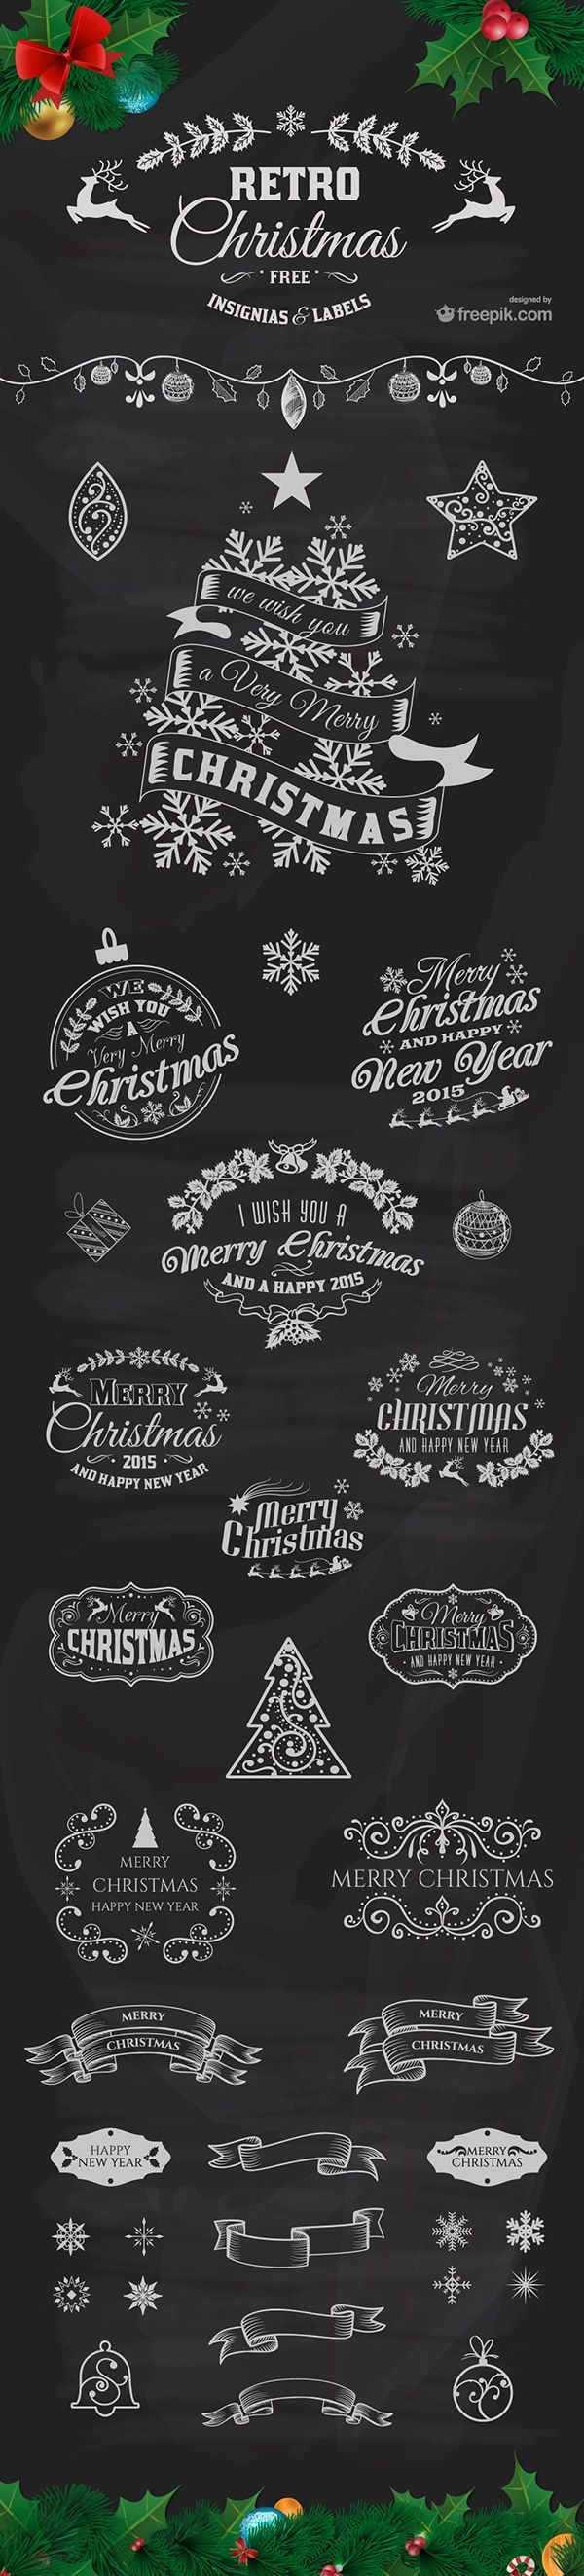 Access All Areas members are being treated to some early Christmas pressies today from Freepik. This pack of Retro Christmas Insignias & Labels contains 30 customisable designs with a festive theme for members to use in their Christmas promos. Each file is available in vector AI and EPS formats, with a list of freely downloadable …